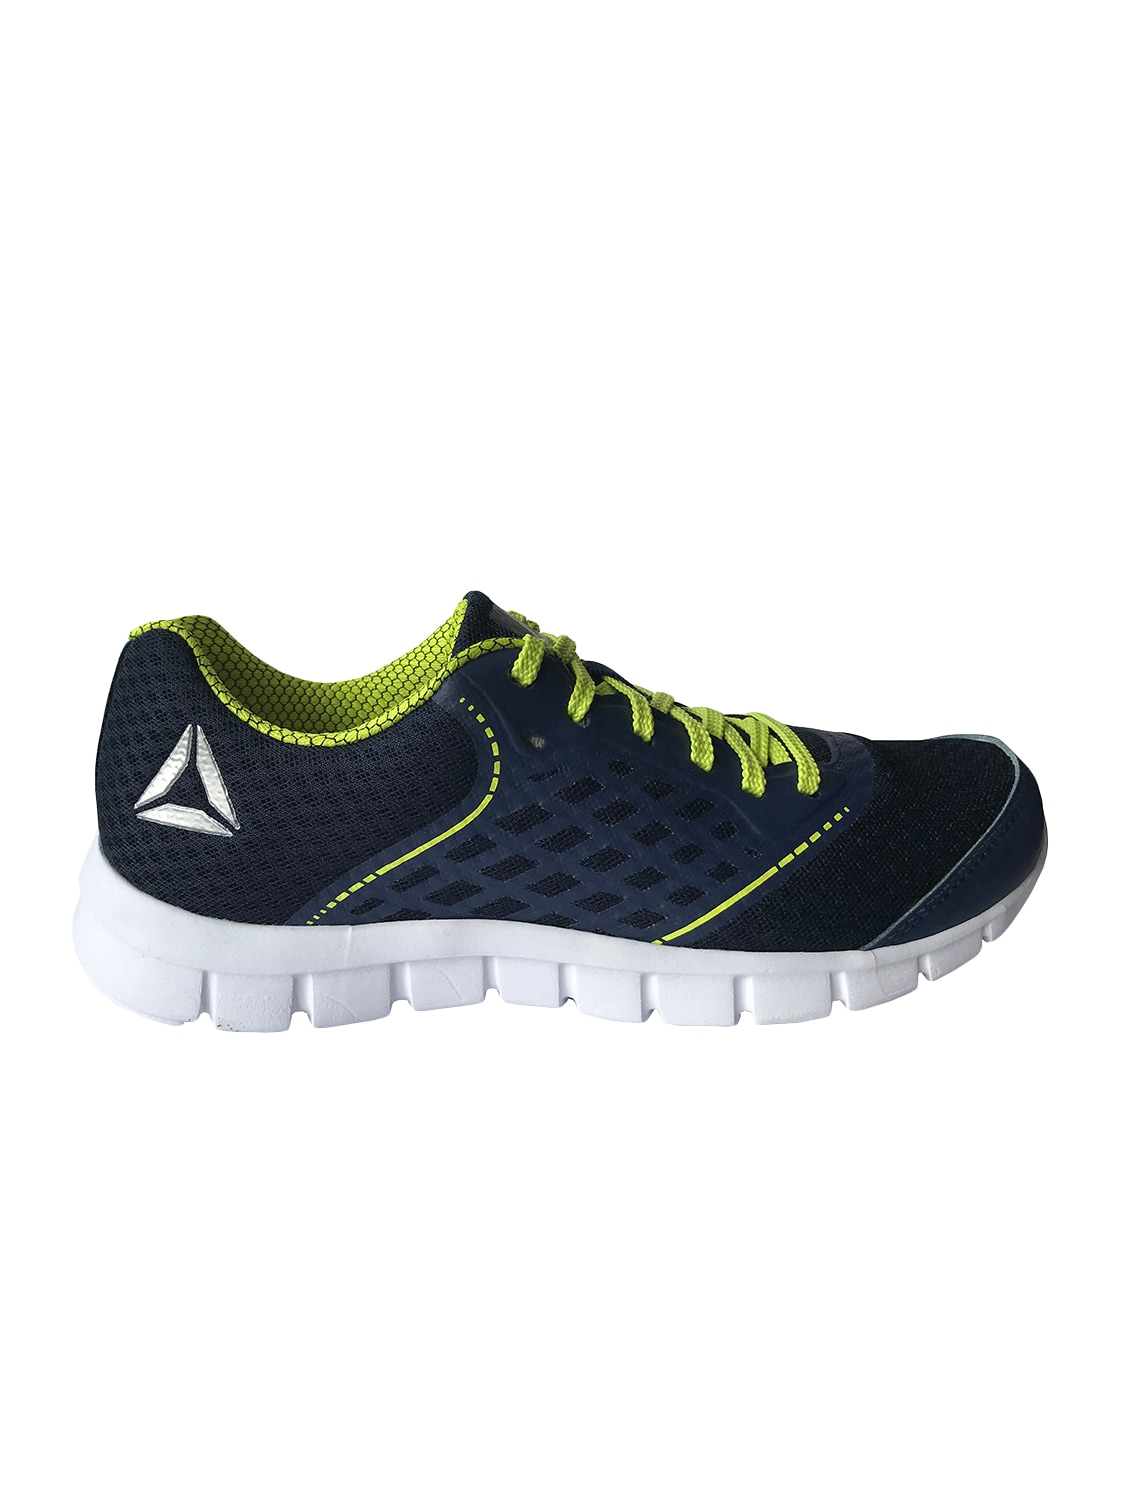 cc7595174573b4 Buy Navy Mesh Sport Shoe by Reebok - Online shopping for Sport Shoes in  India